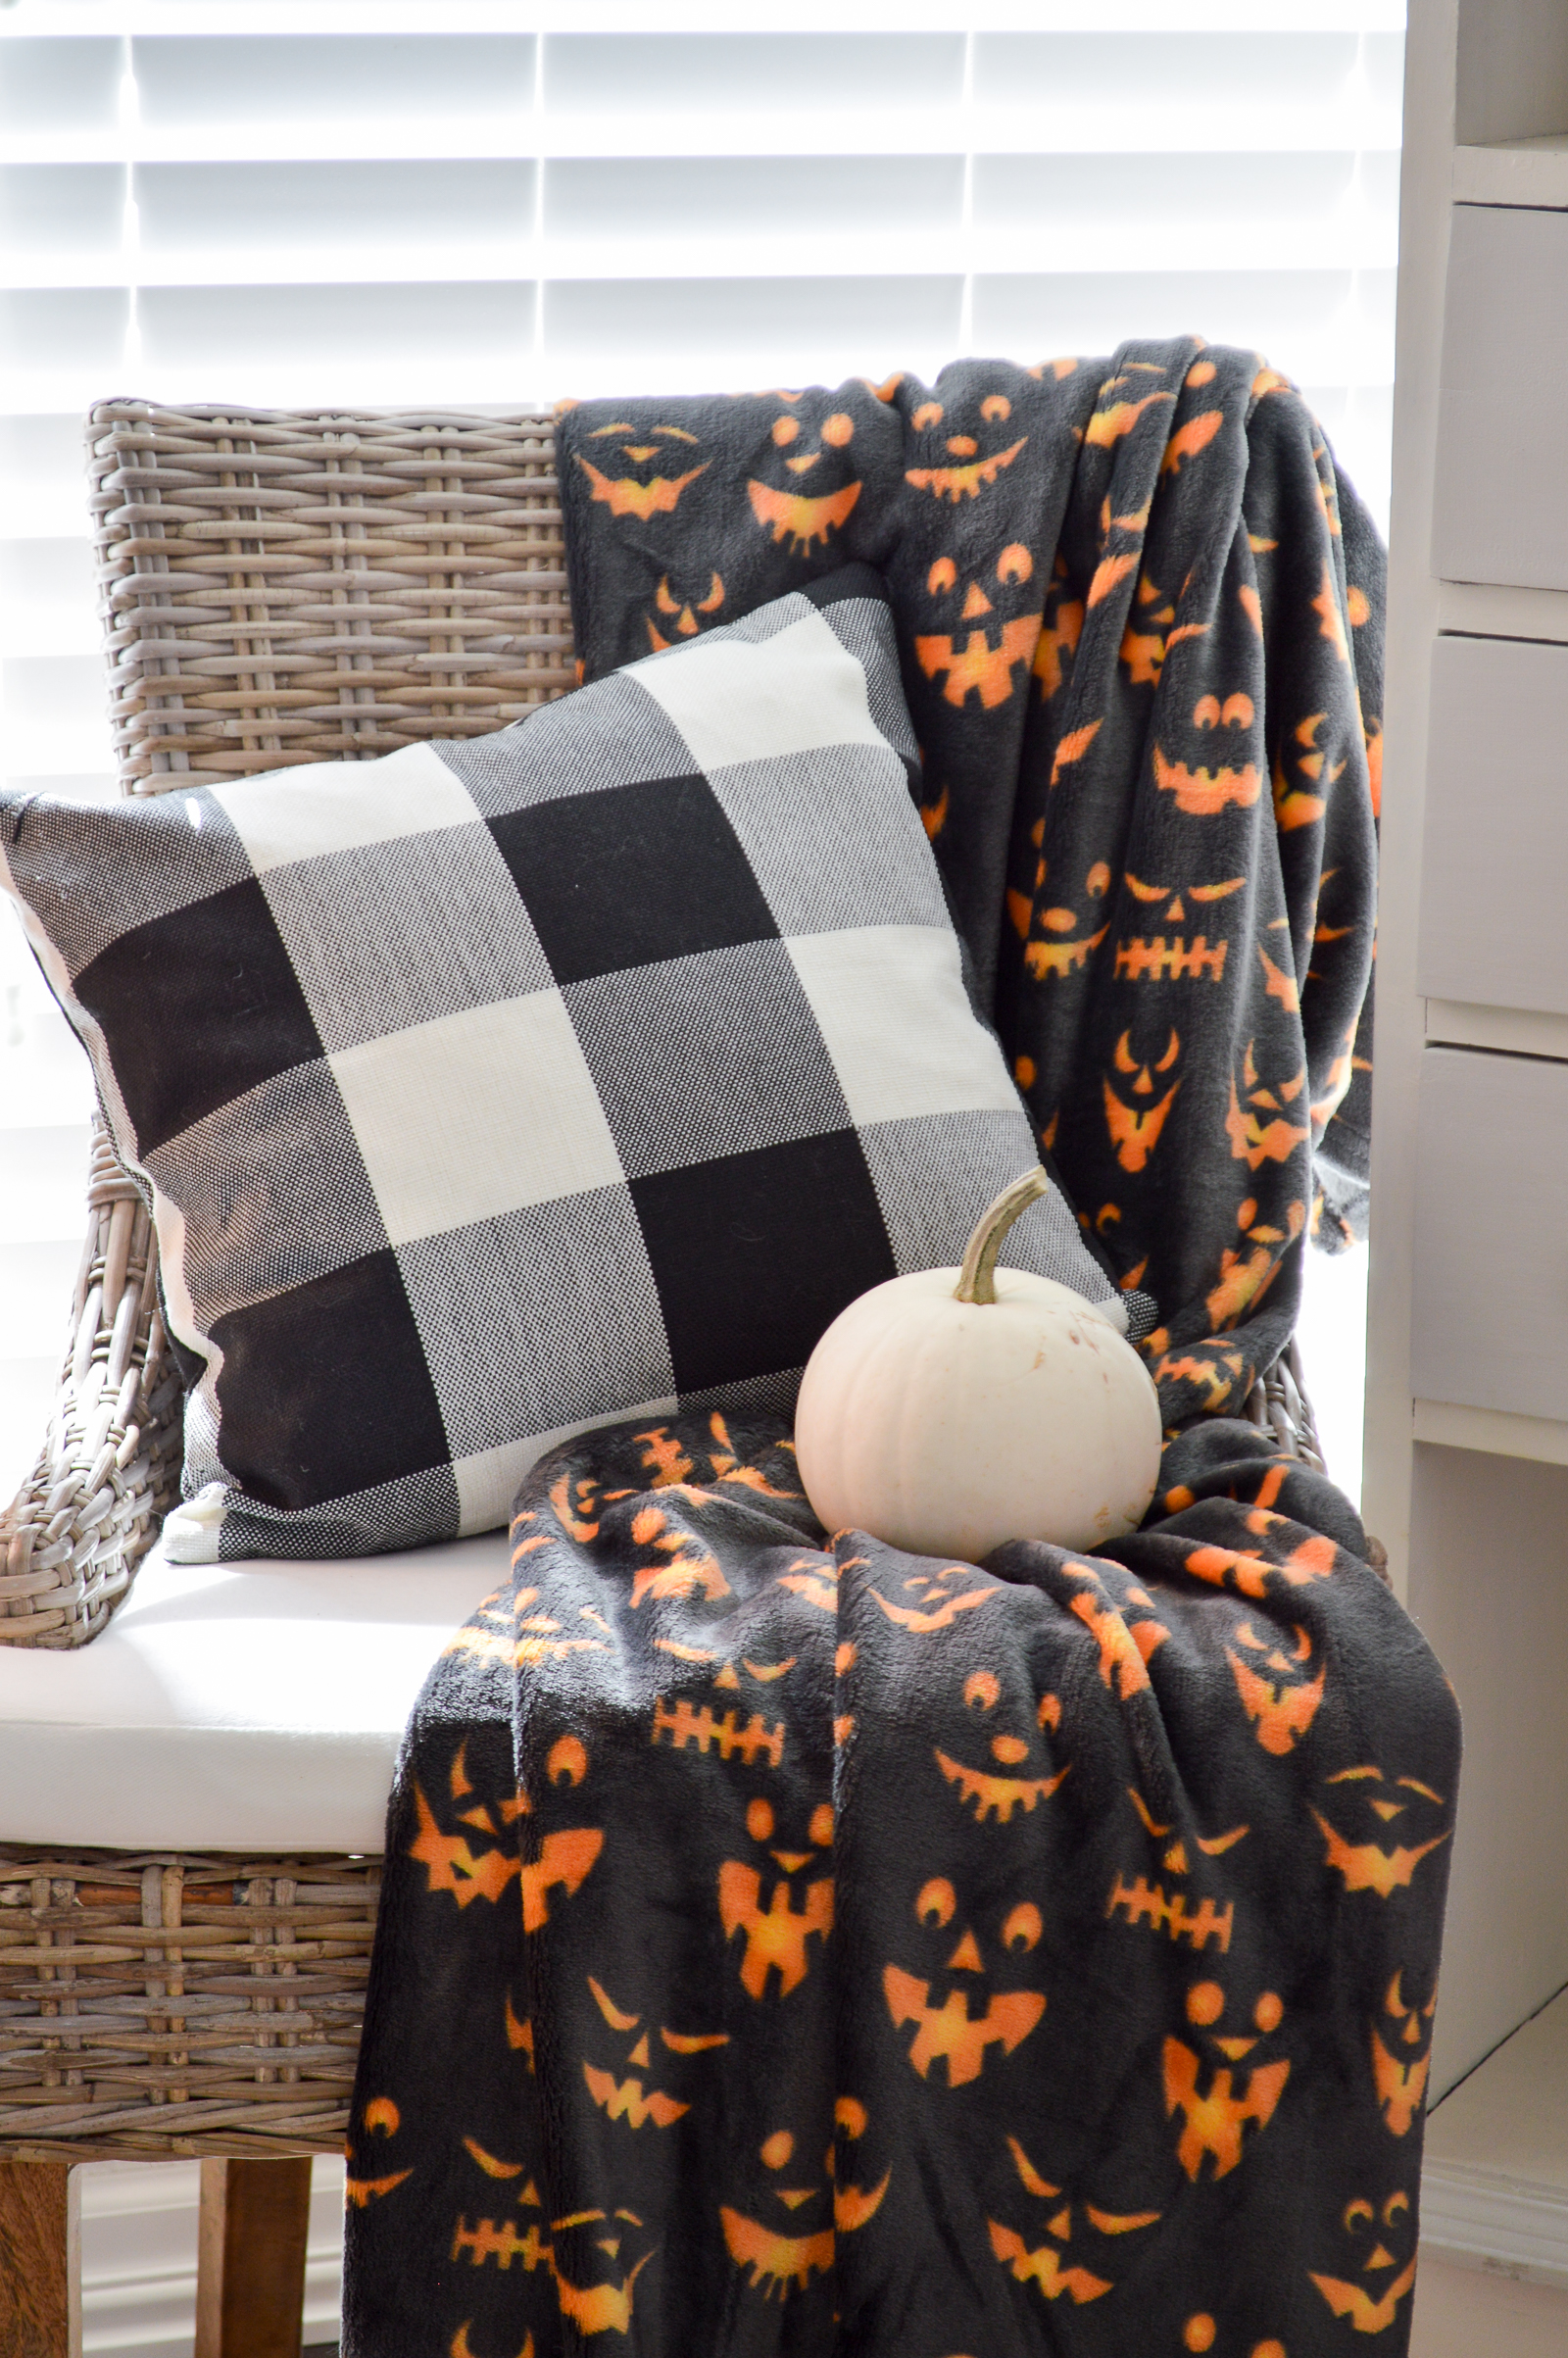 Haunted Halloween Decorating in the Sun Room